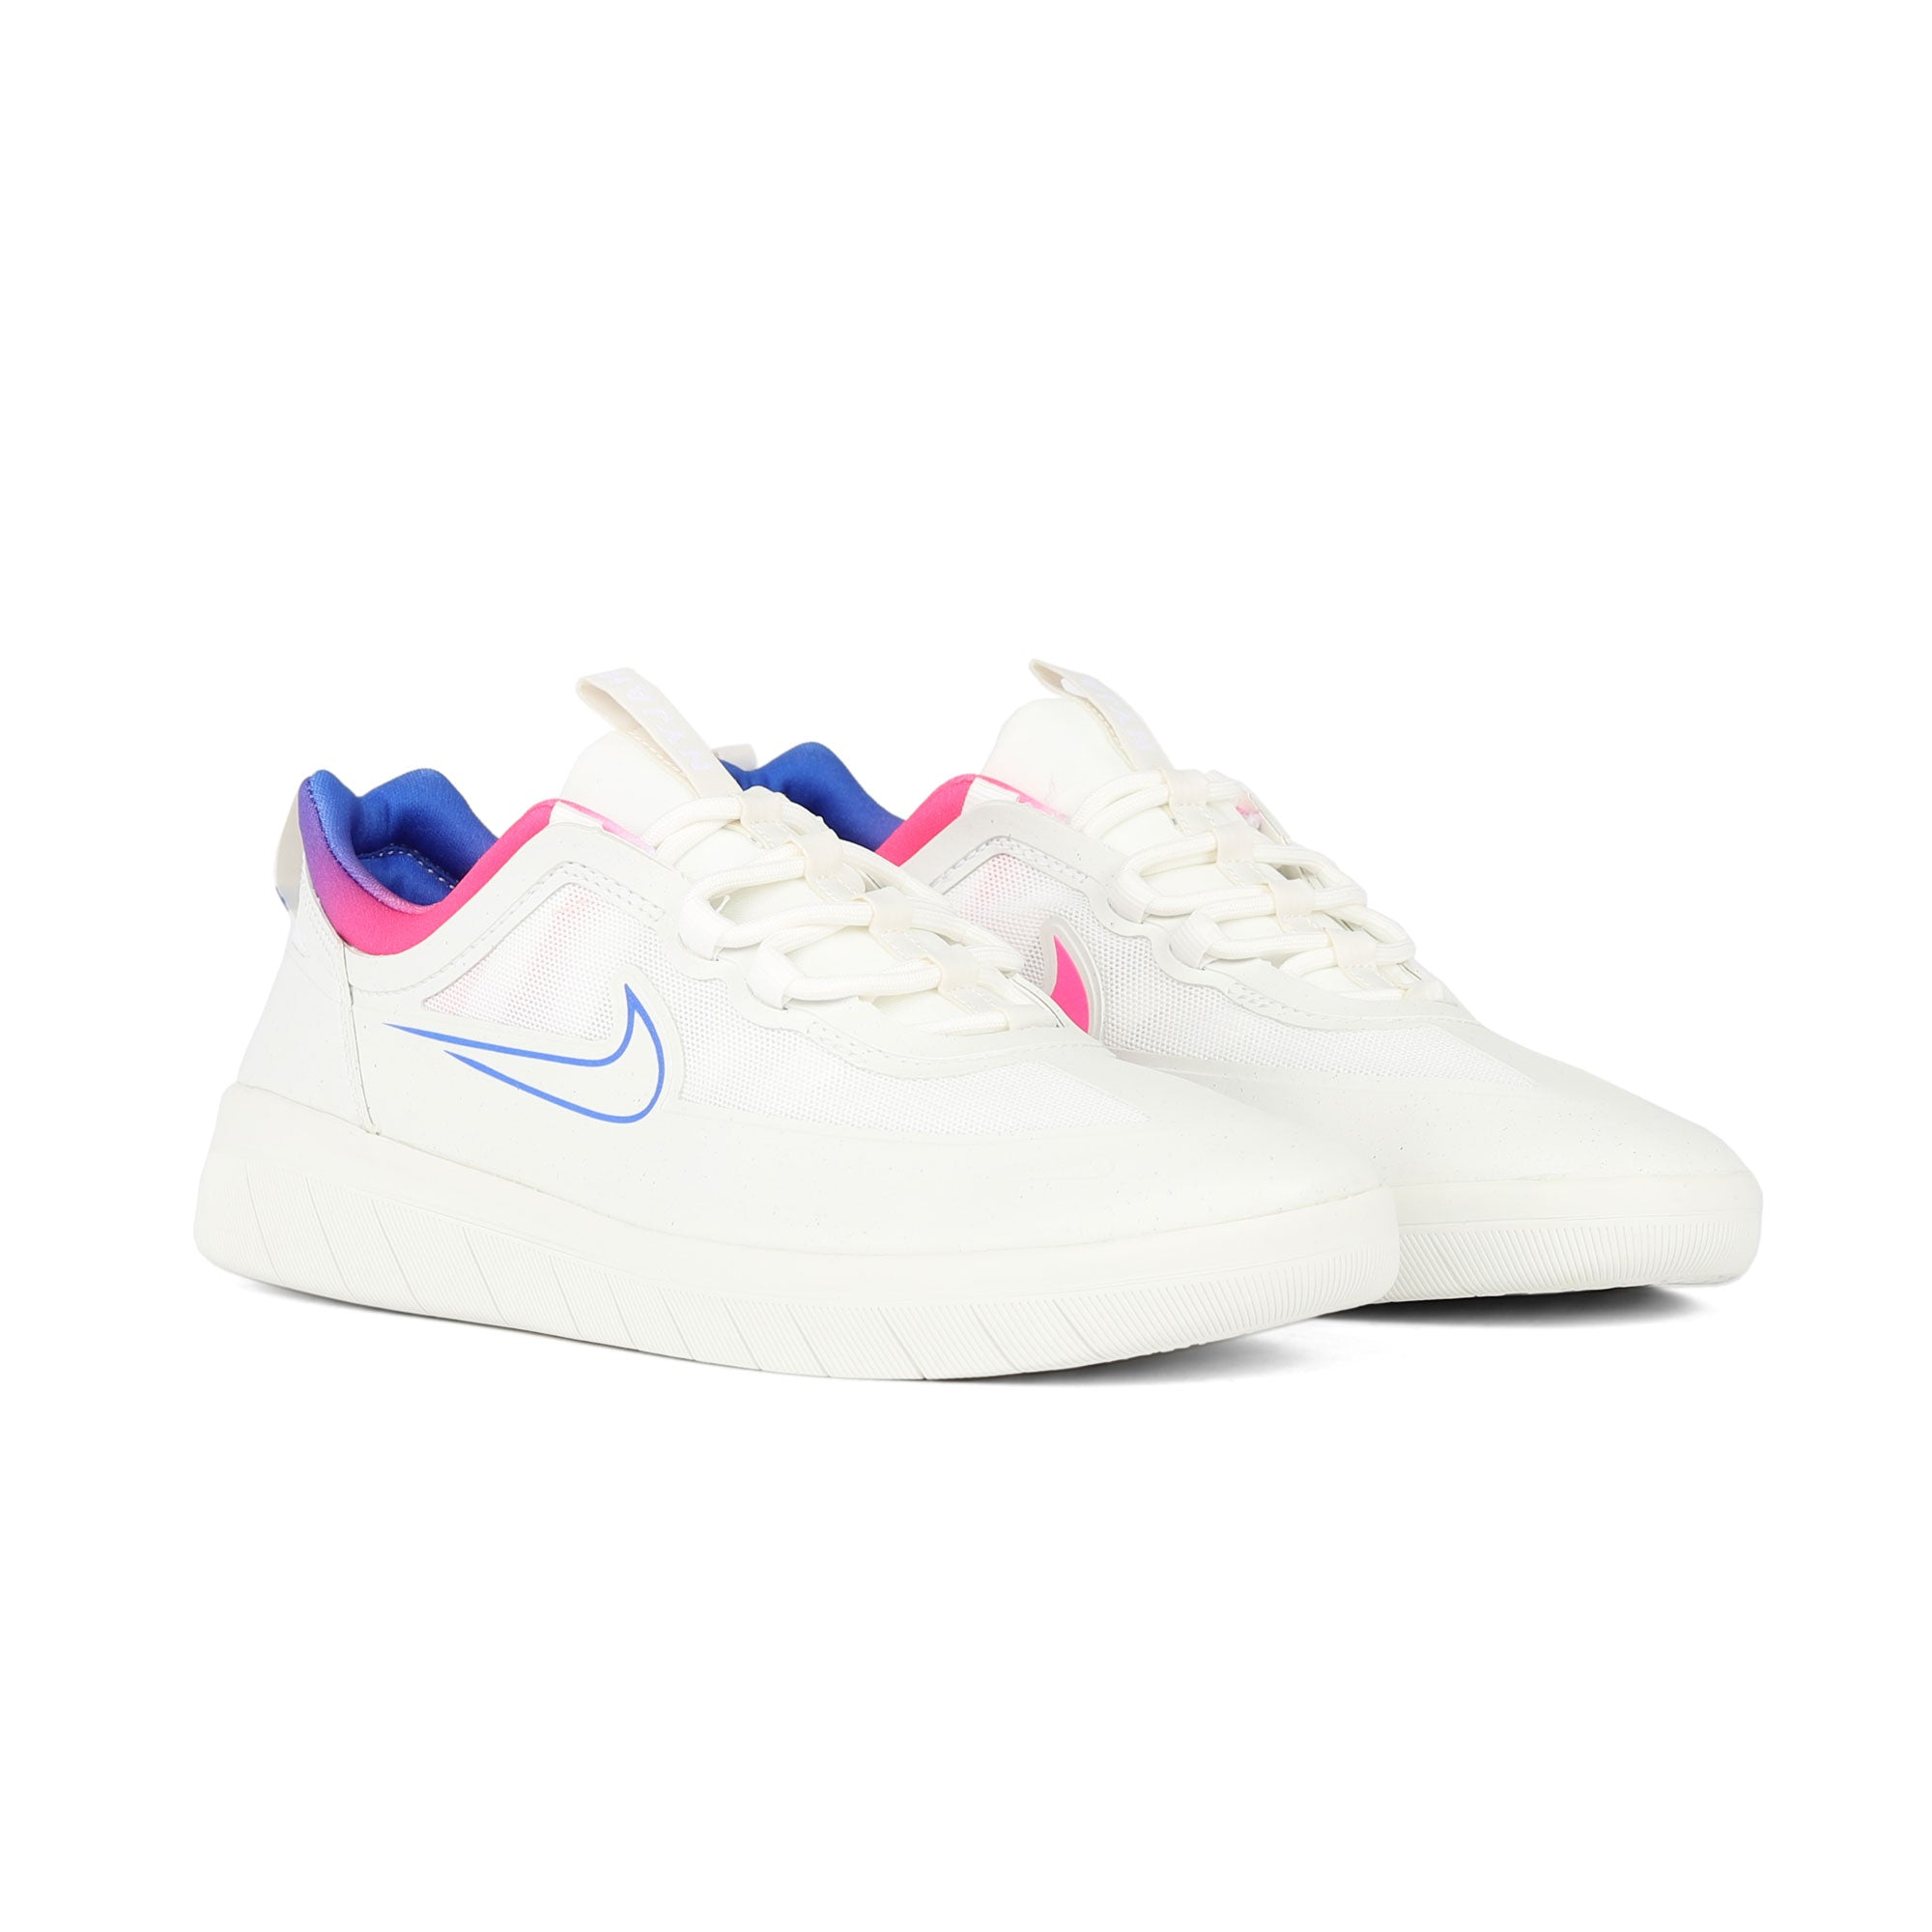 Nike SB Nyjah Free 2 T Product Photo #2